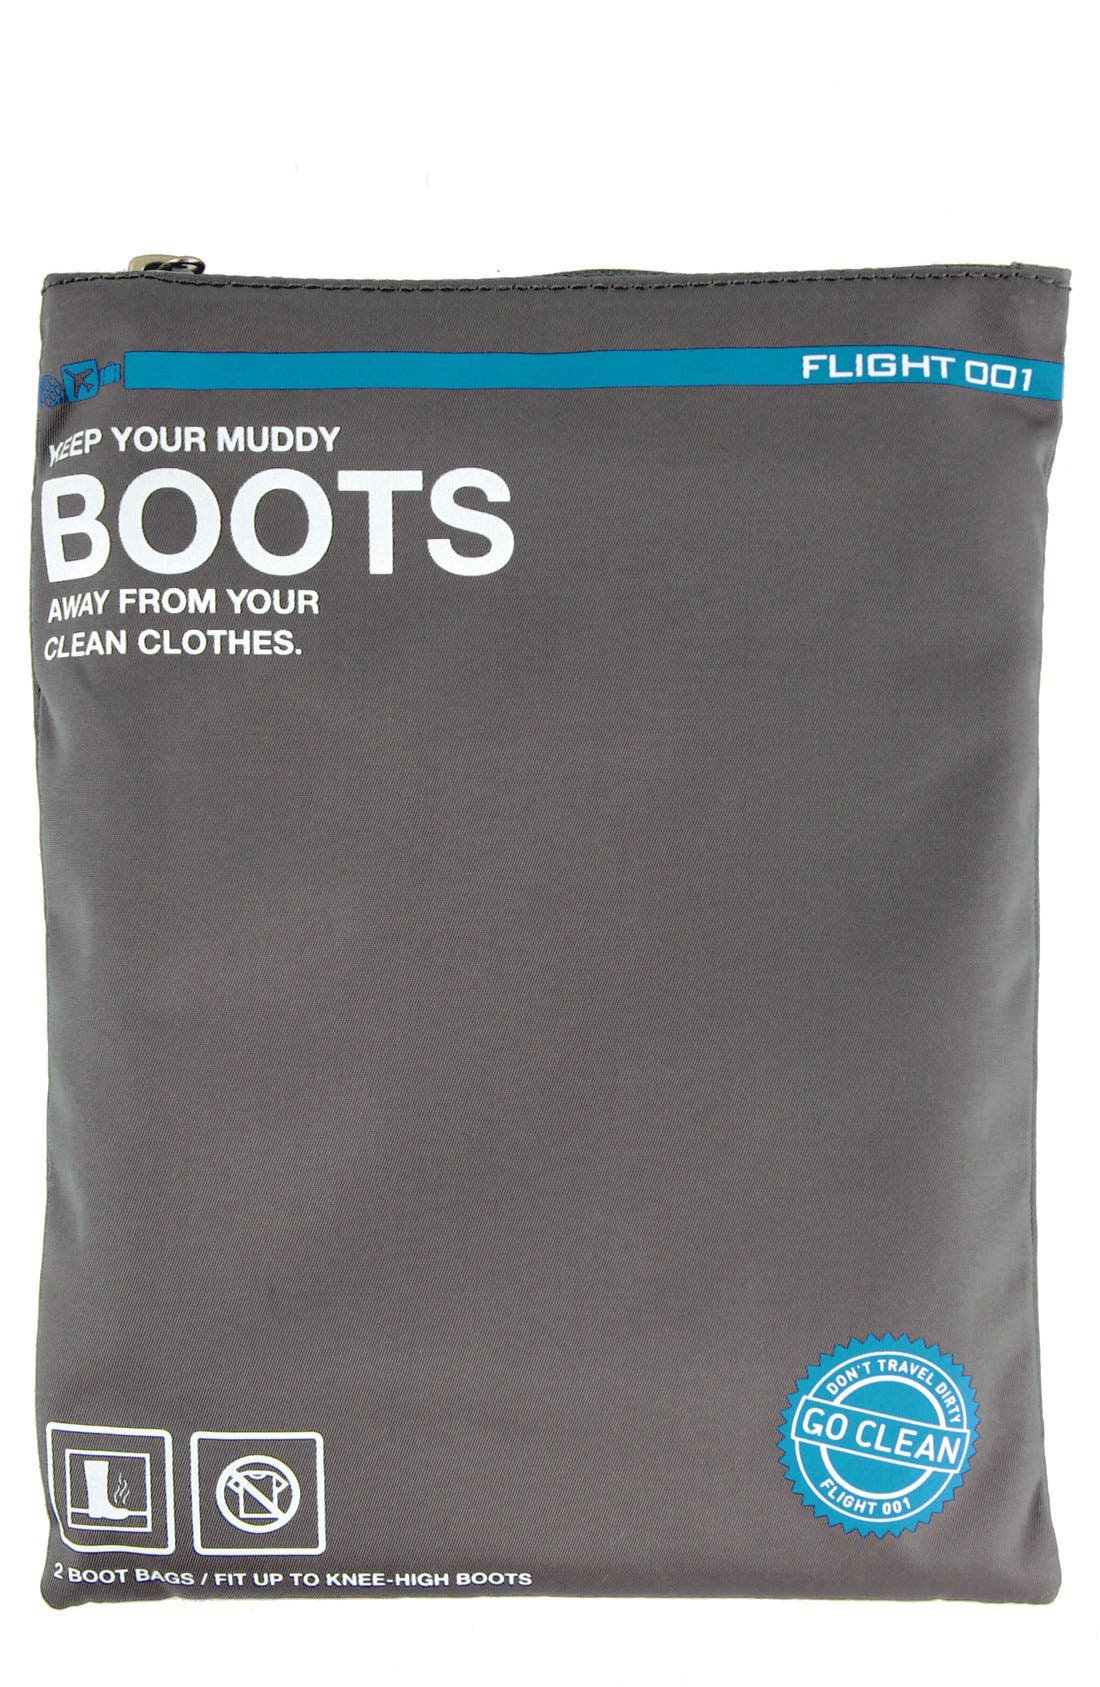 Main Image - Flight 001 'Go Clean' Boot Travel Bags